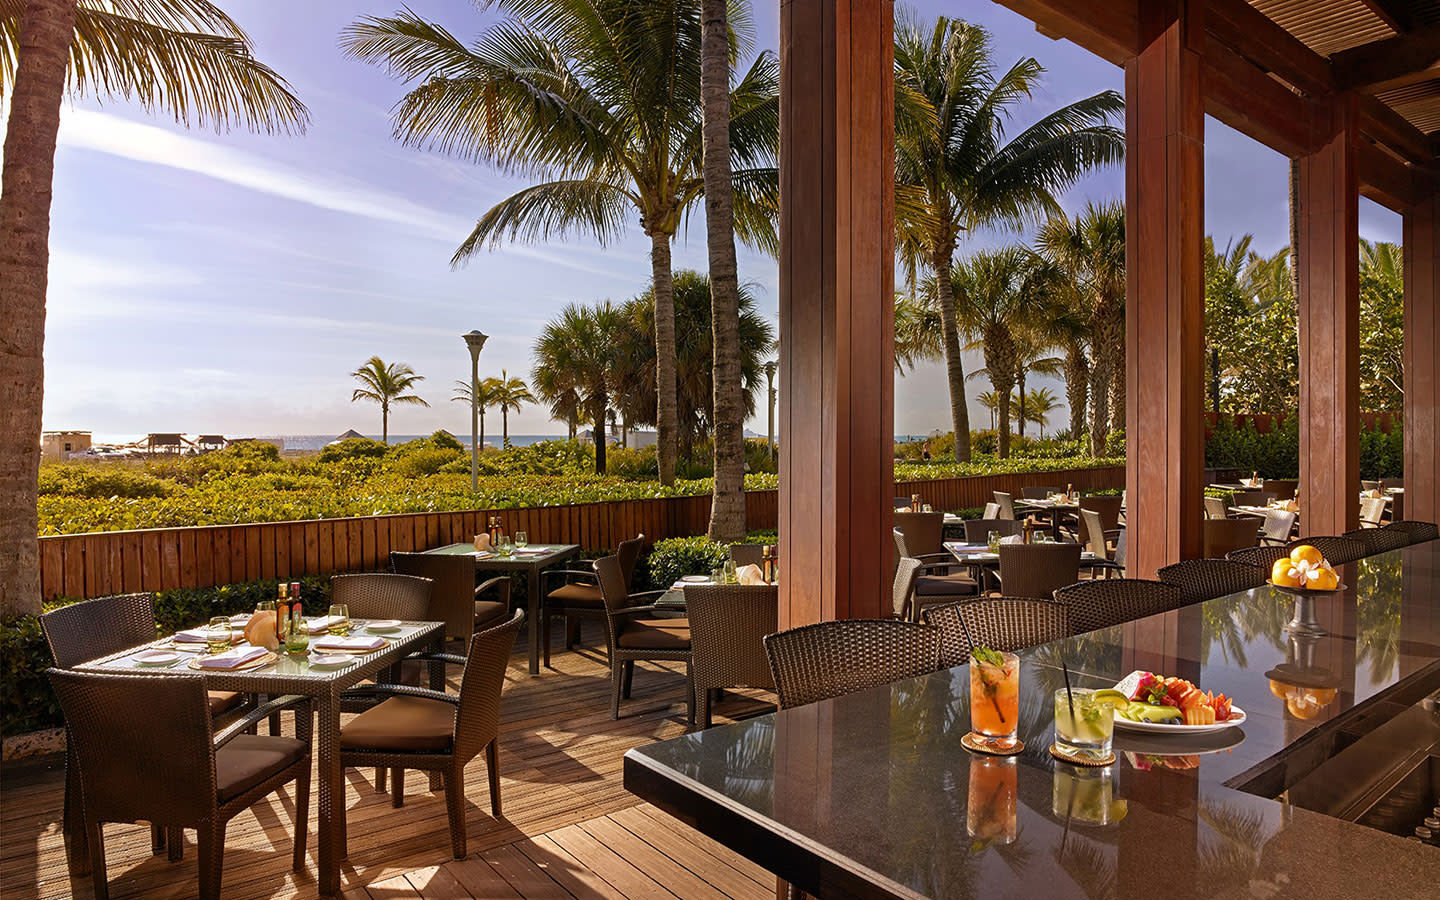 The Ocean Grill at The Setai